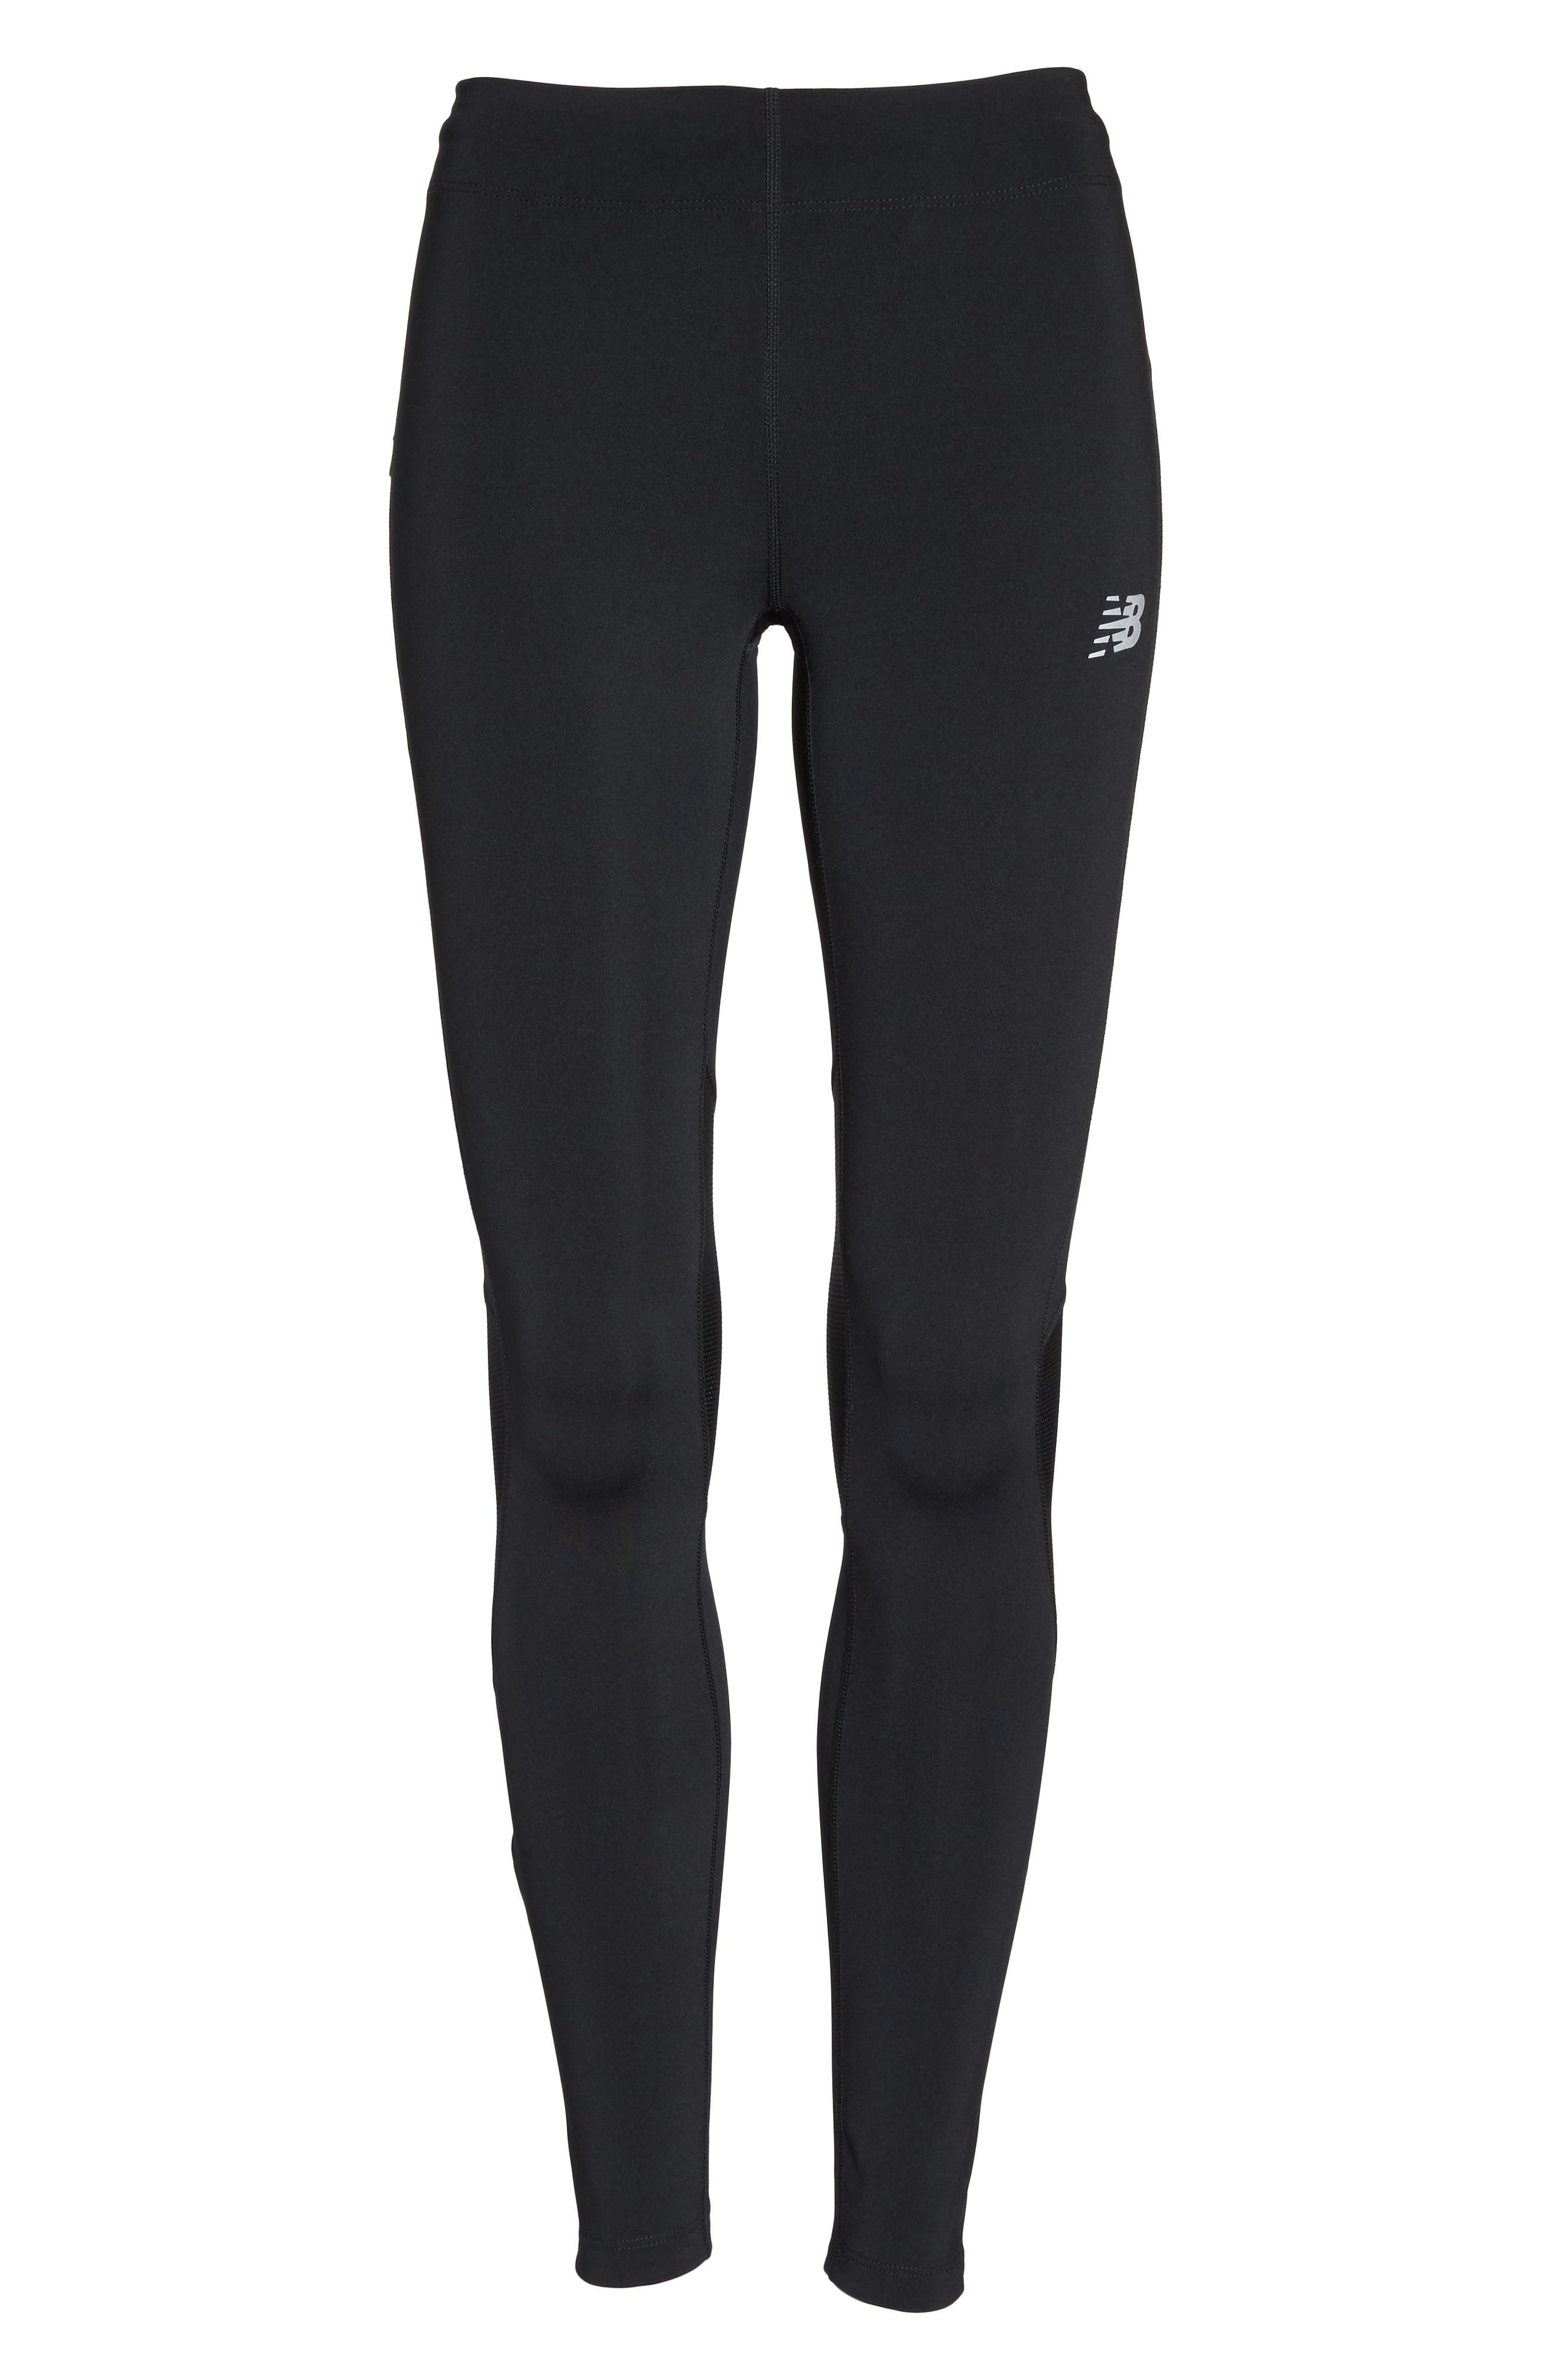 Impact Premium Running Tights,                             Alternate thumbnail 7, color,                             001